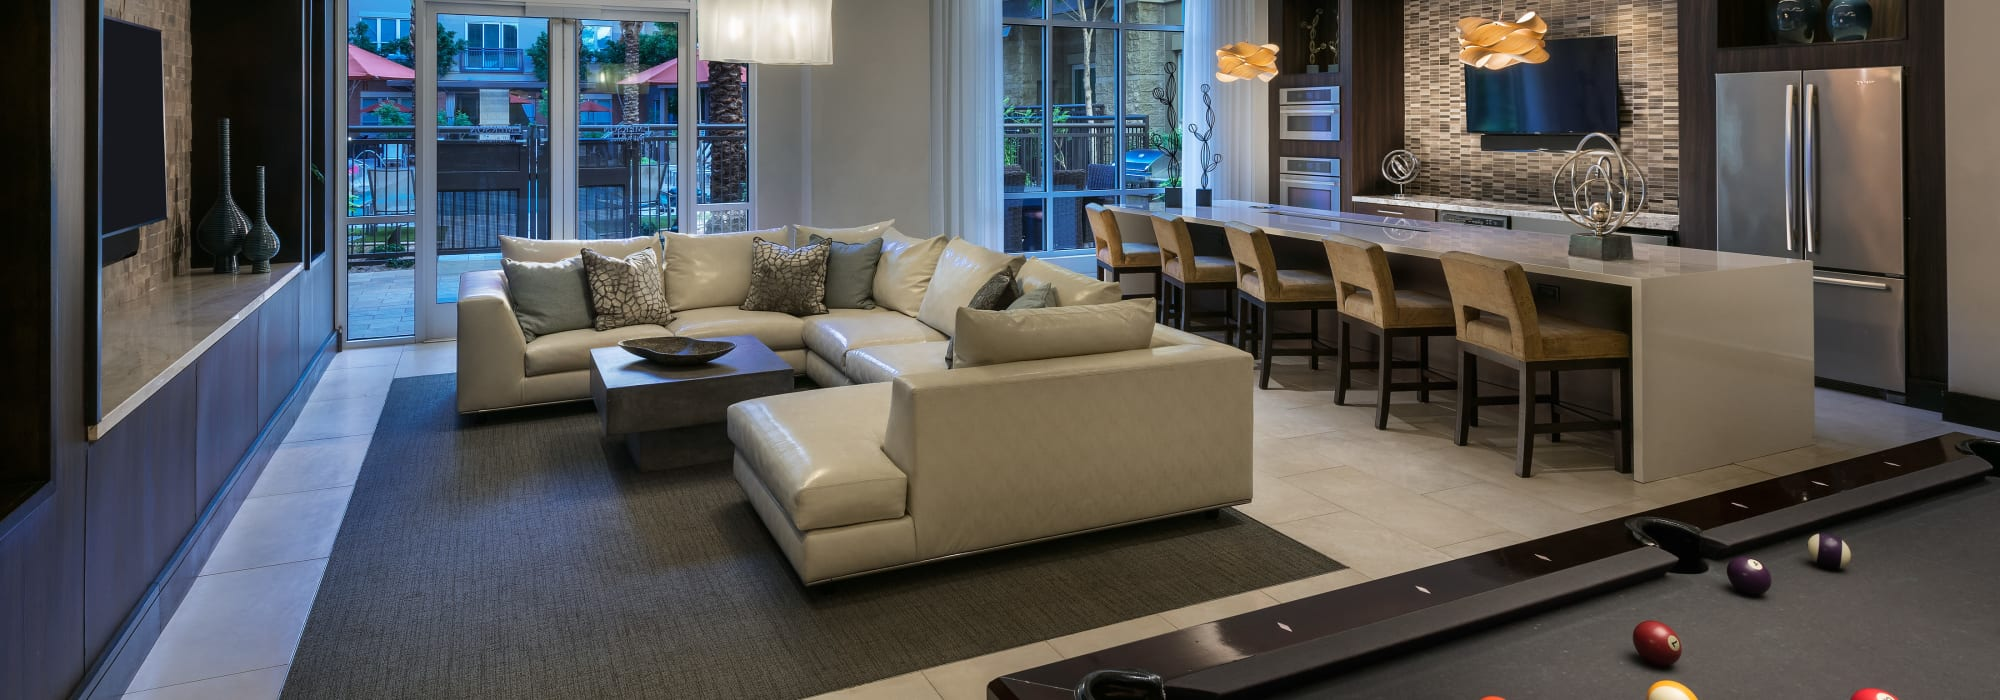 Spacious clubhouse to entertain friends and family at Emerson Mill Avenue in Tempe, Arizona